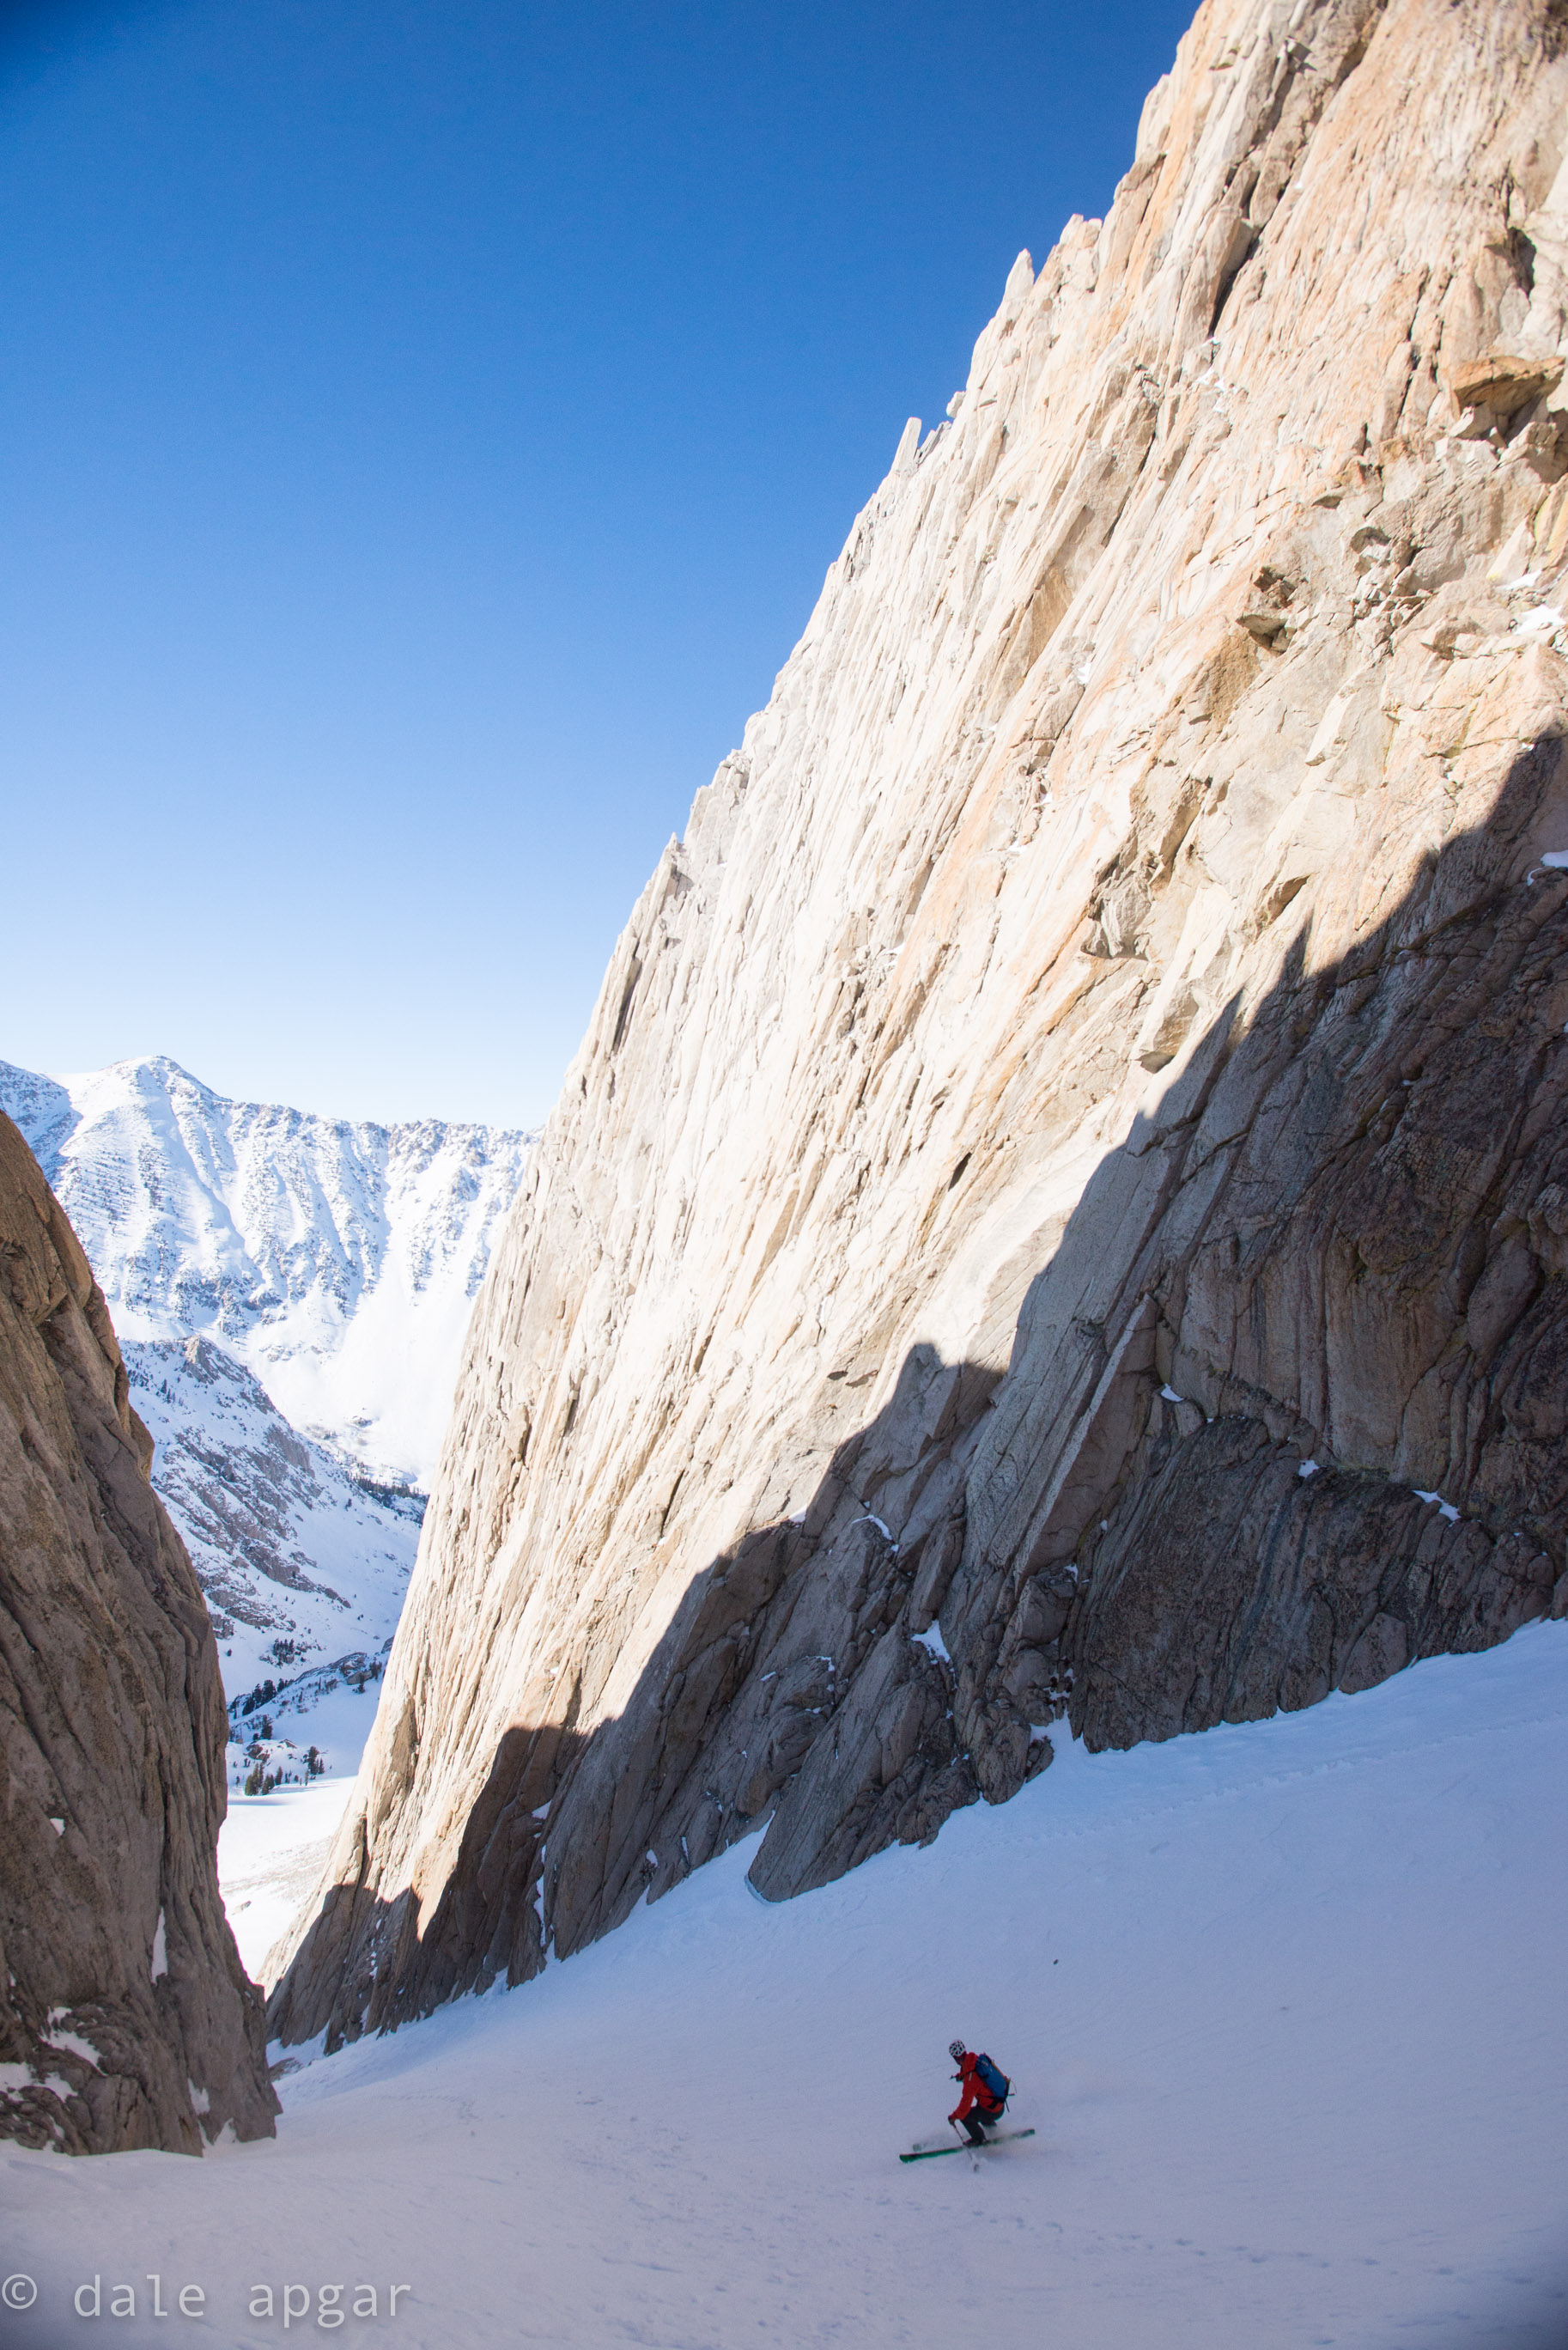 Owen, taking the first firm turns down the Incredible Hulk's Right Couloir.